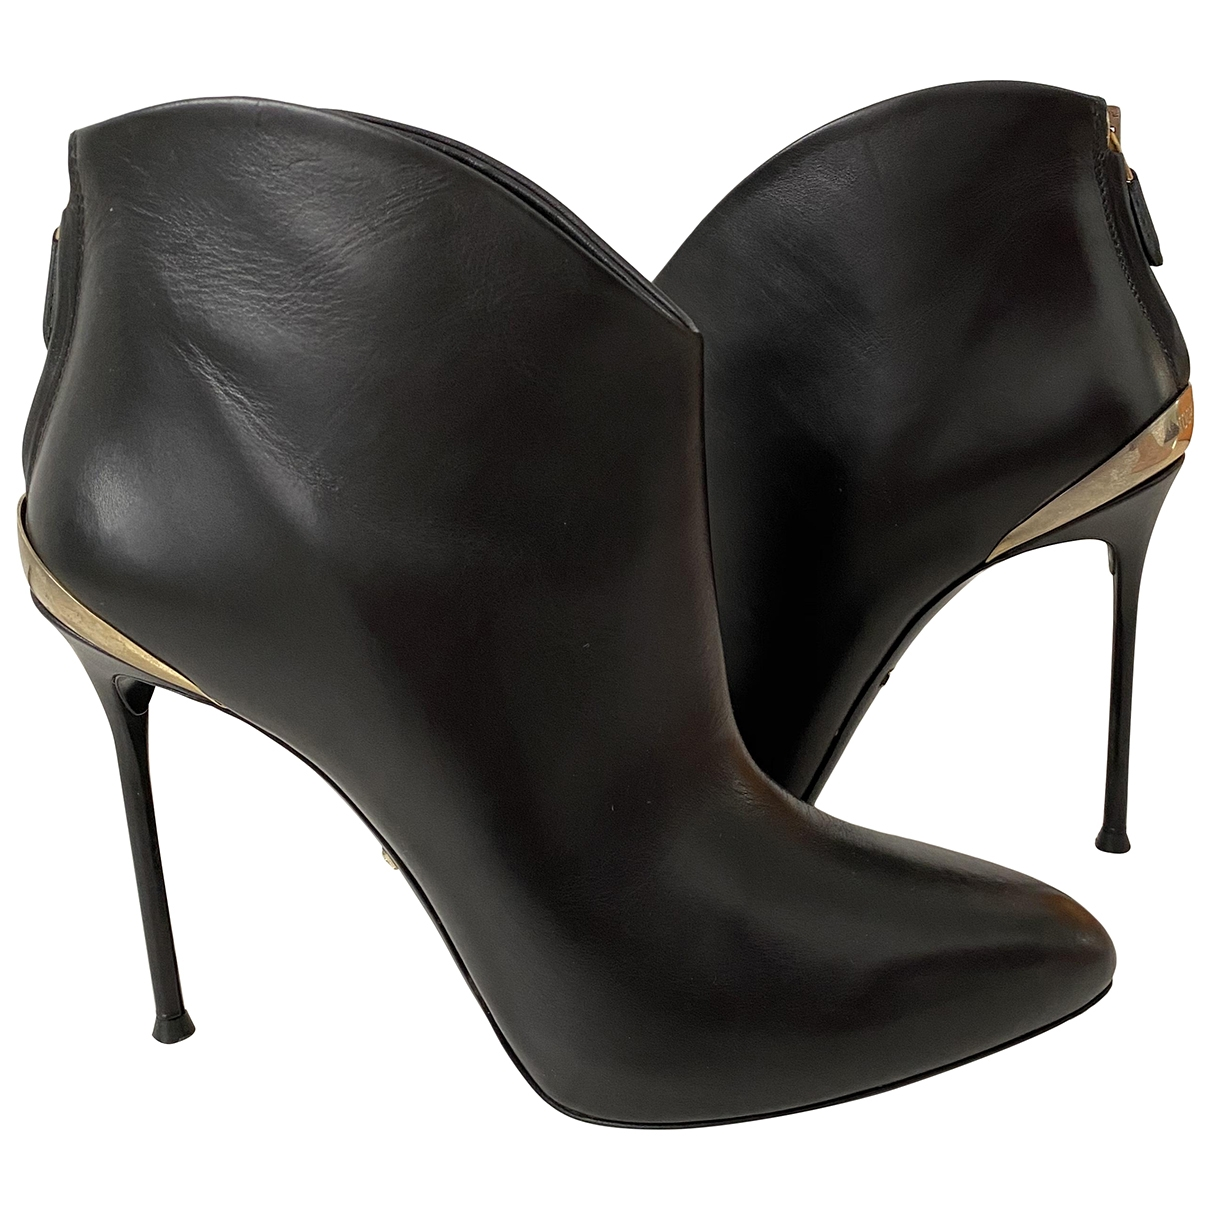 Roberto Cavalli \N Black Leather Ankle boots for Women 38 EU